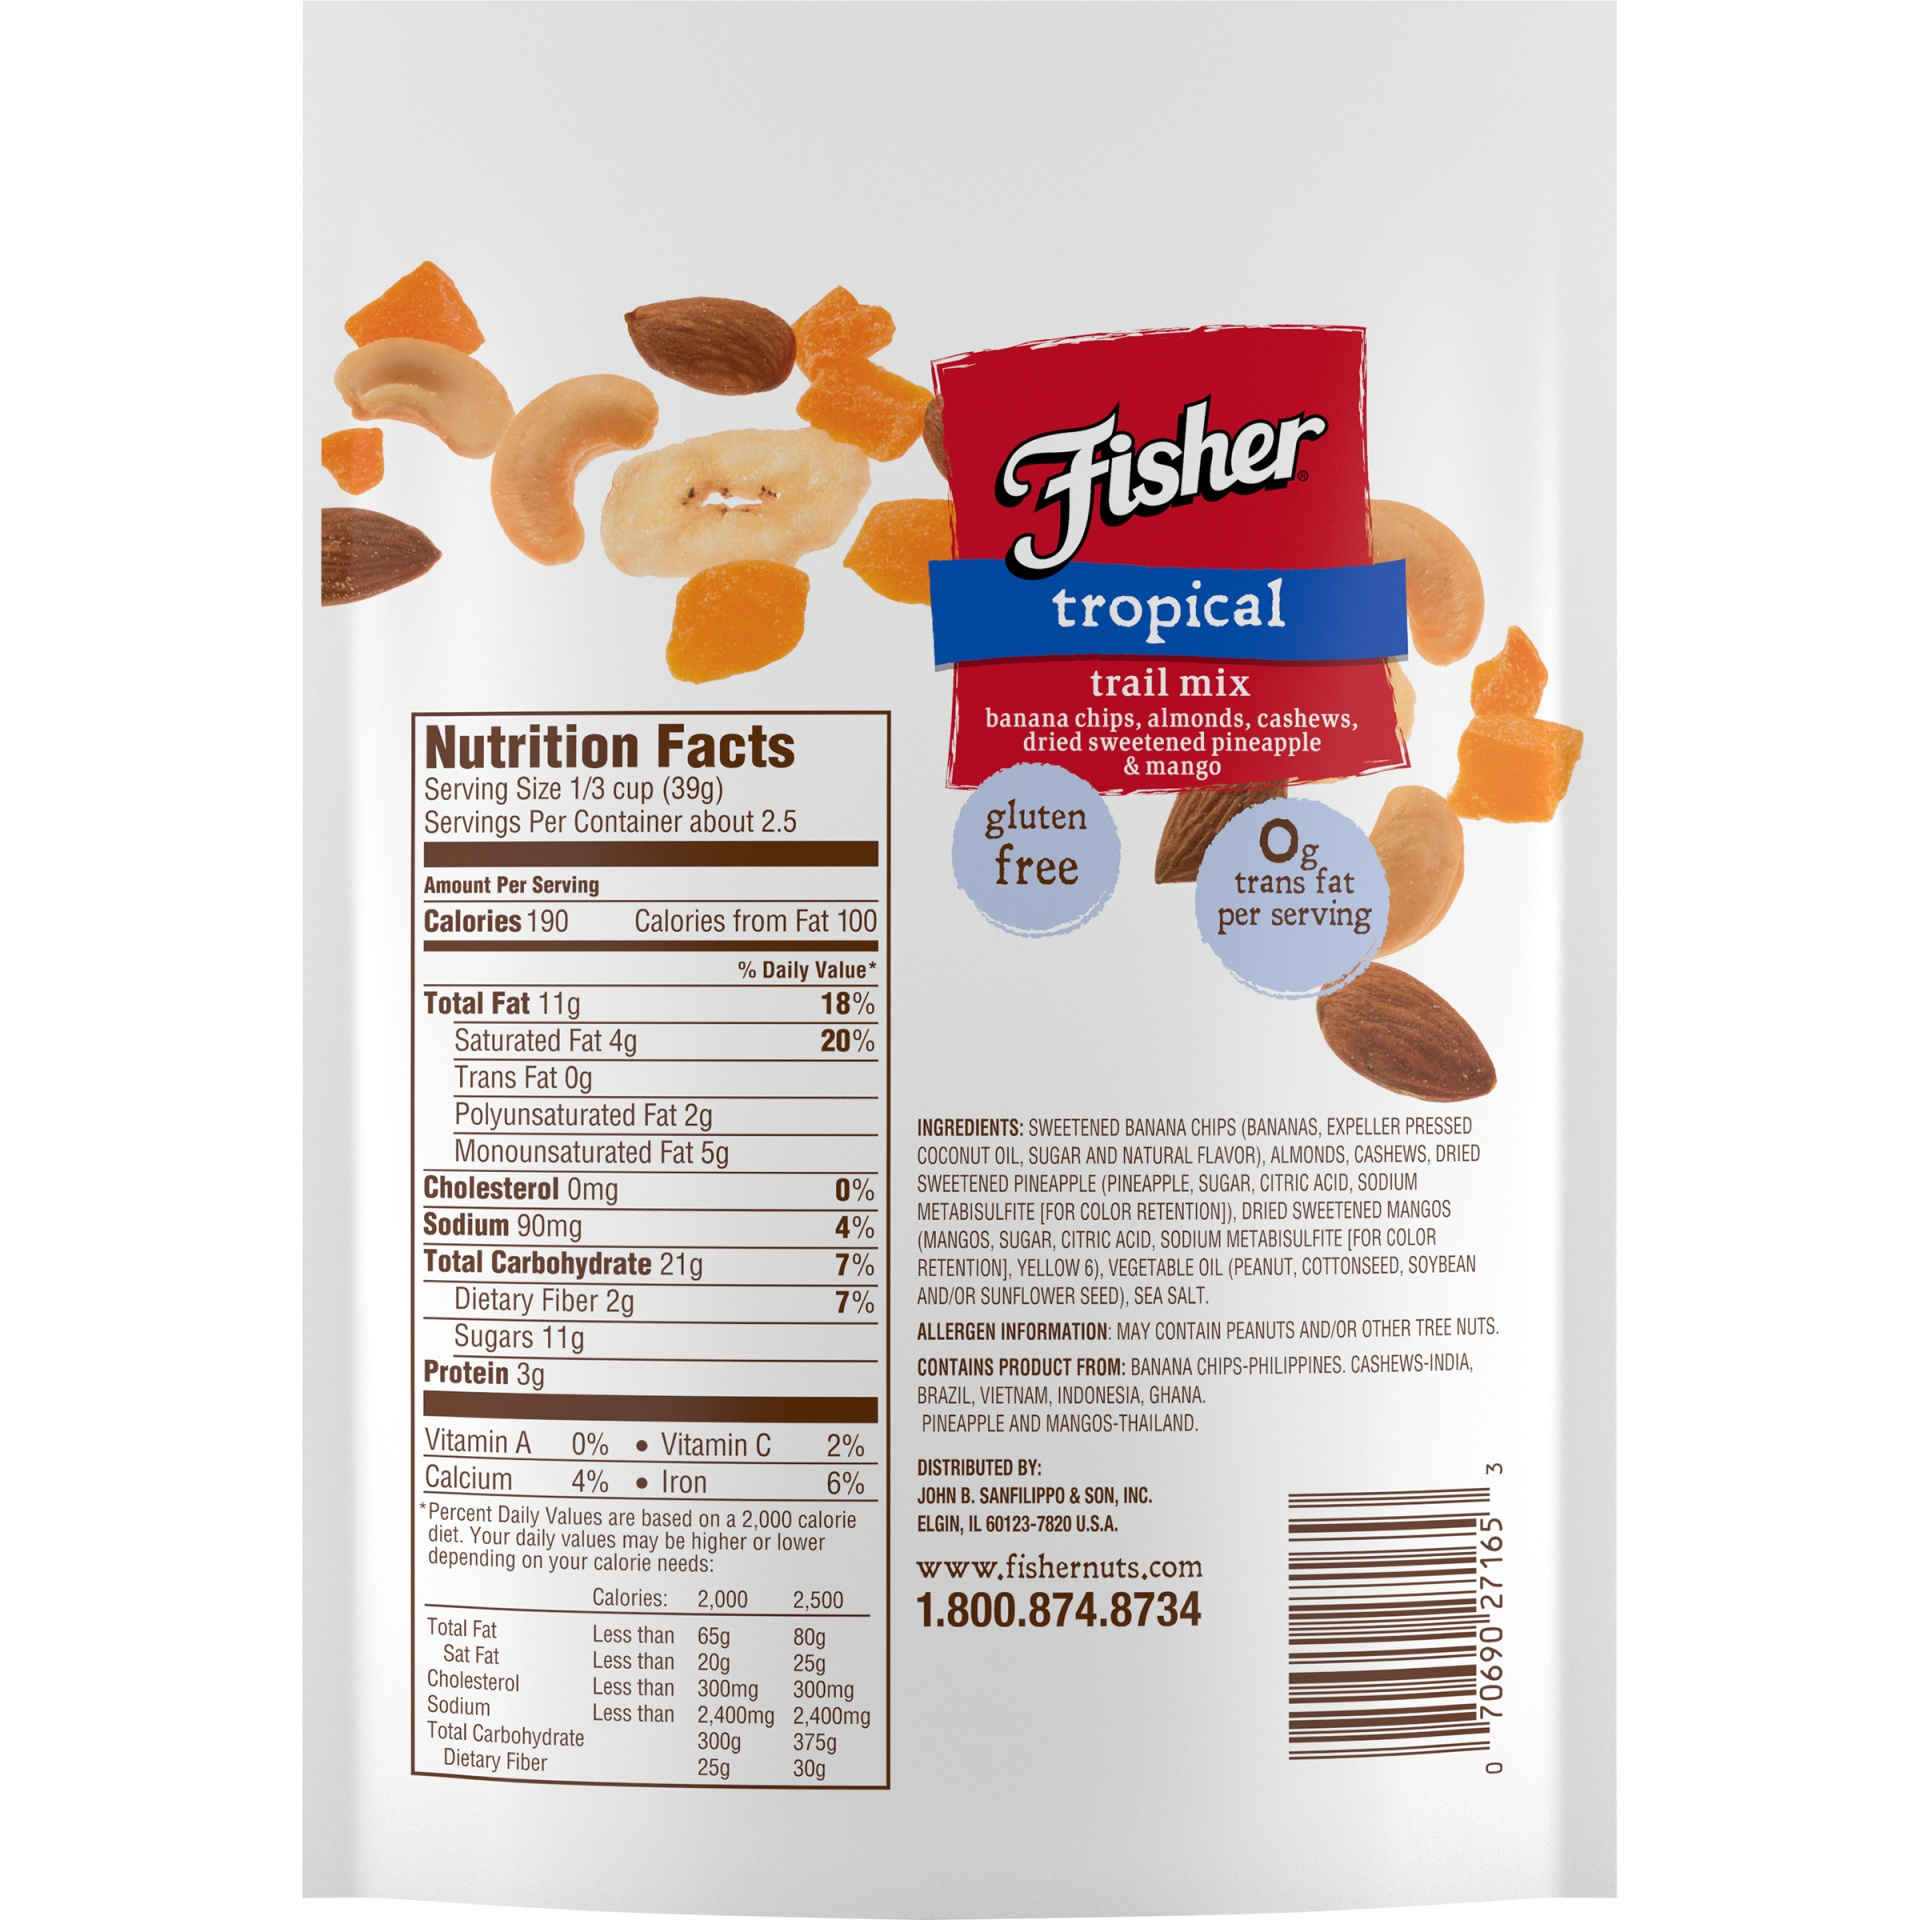 slide 6 of 8, Fisher Tropical Trail Mix,